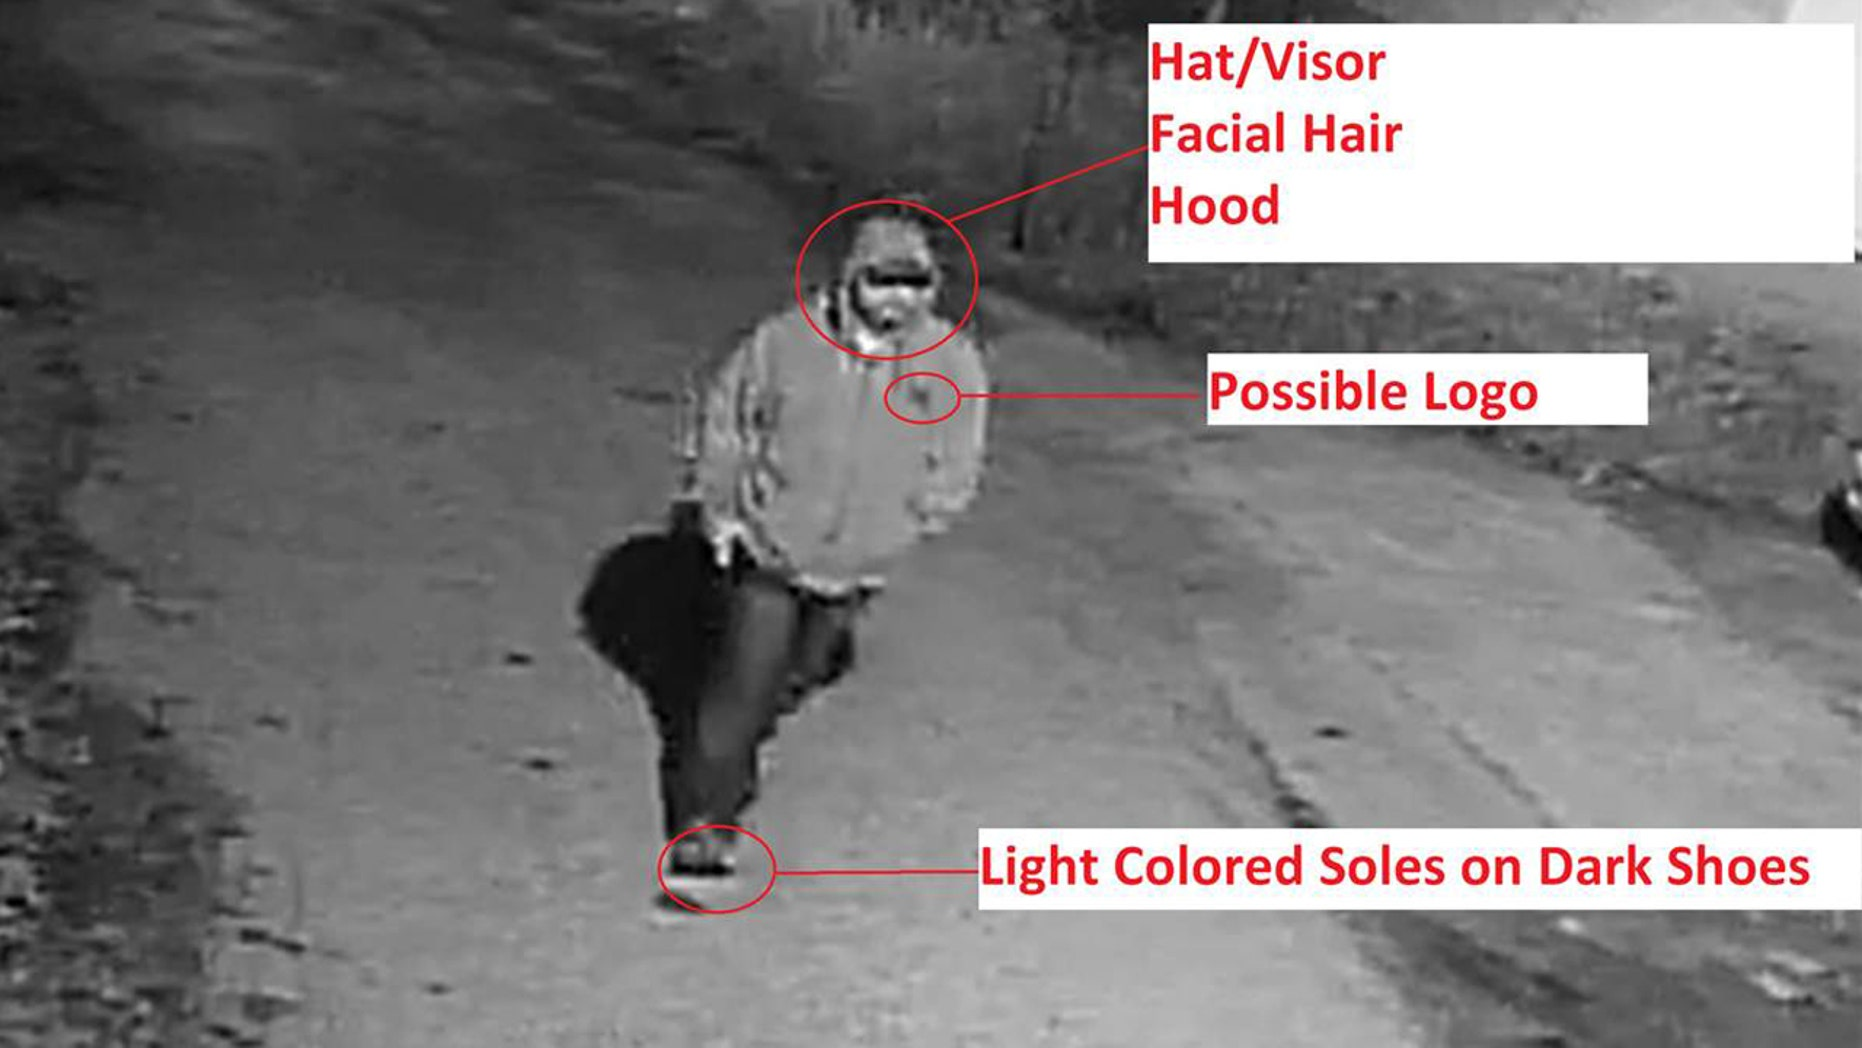 This image released Oct. 13, 2016 by the FBI shows the suspect in a number of child abductions in northeastern Ohio